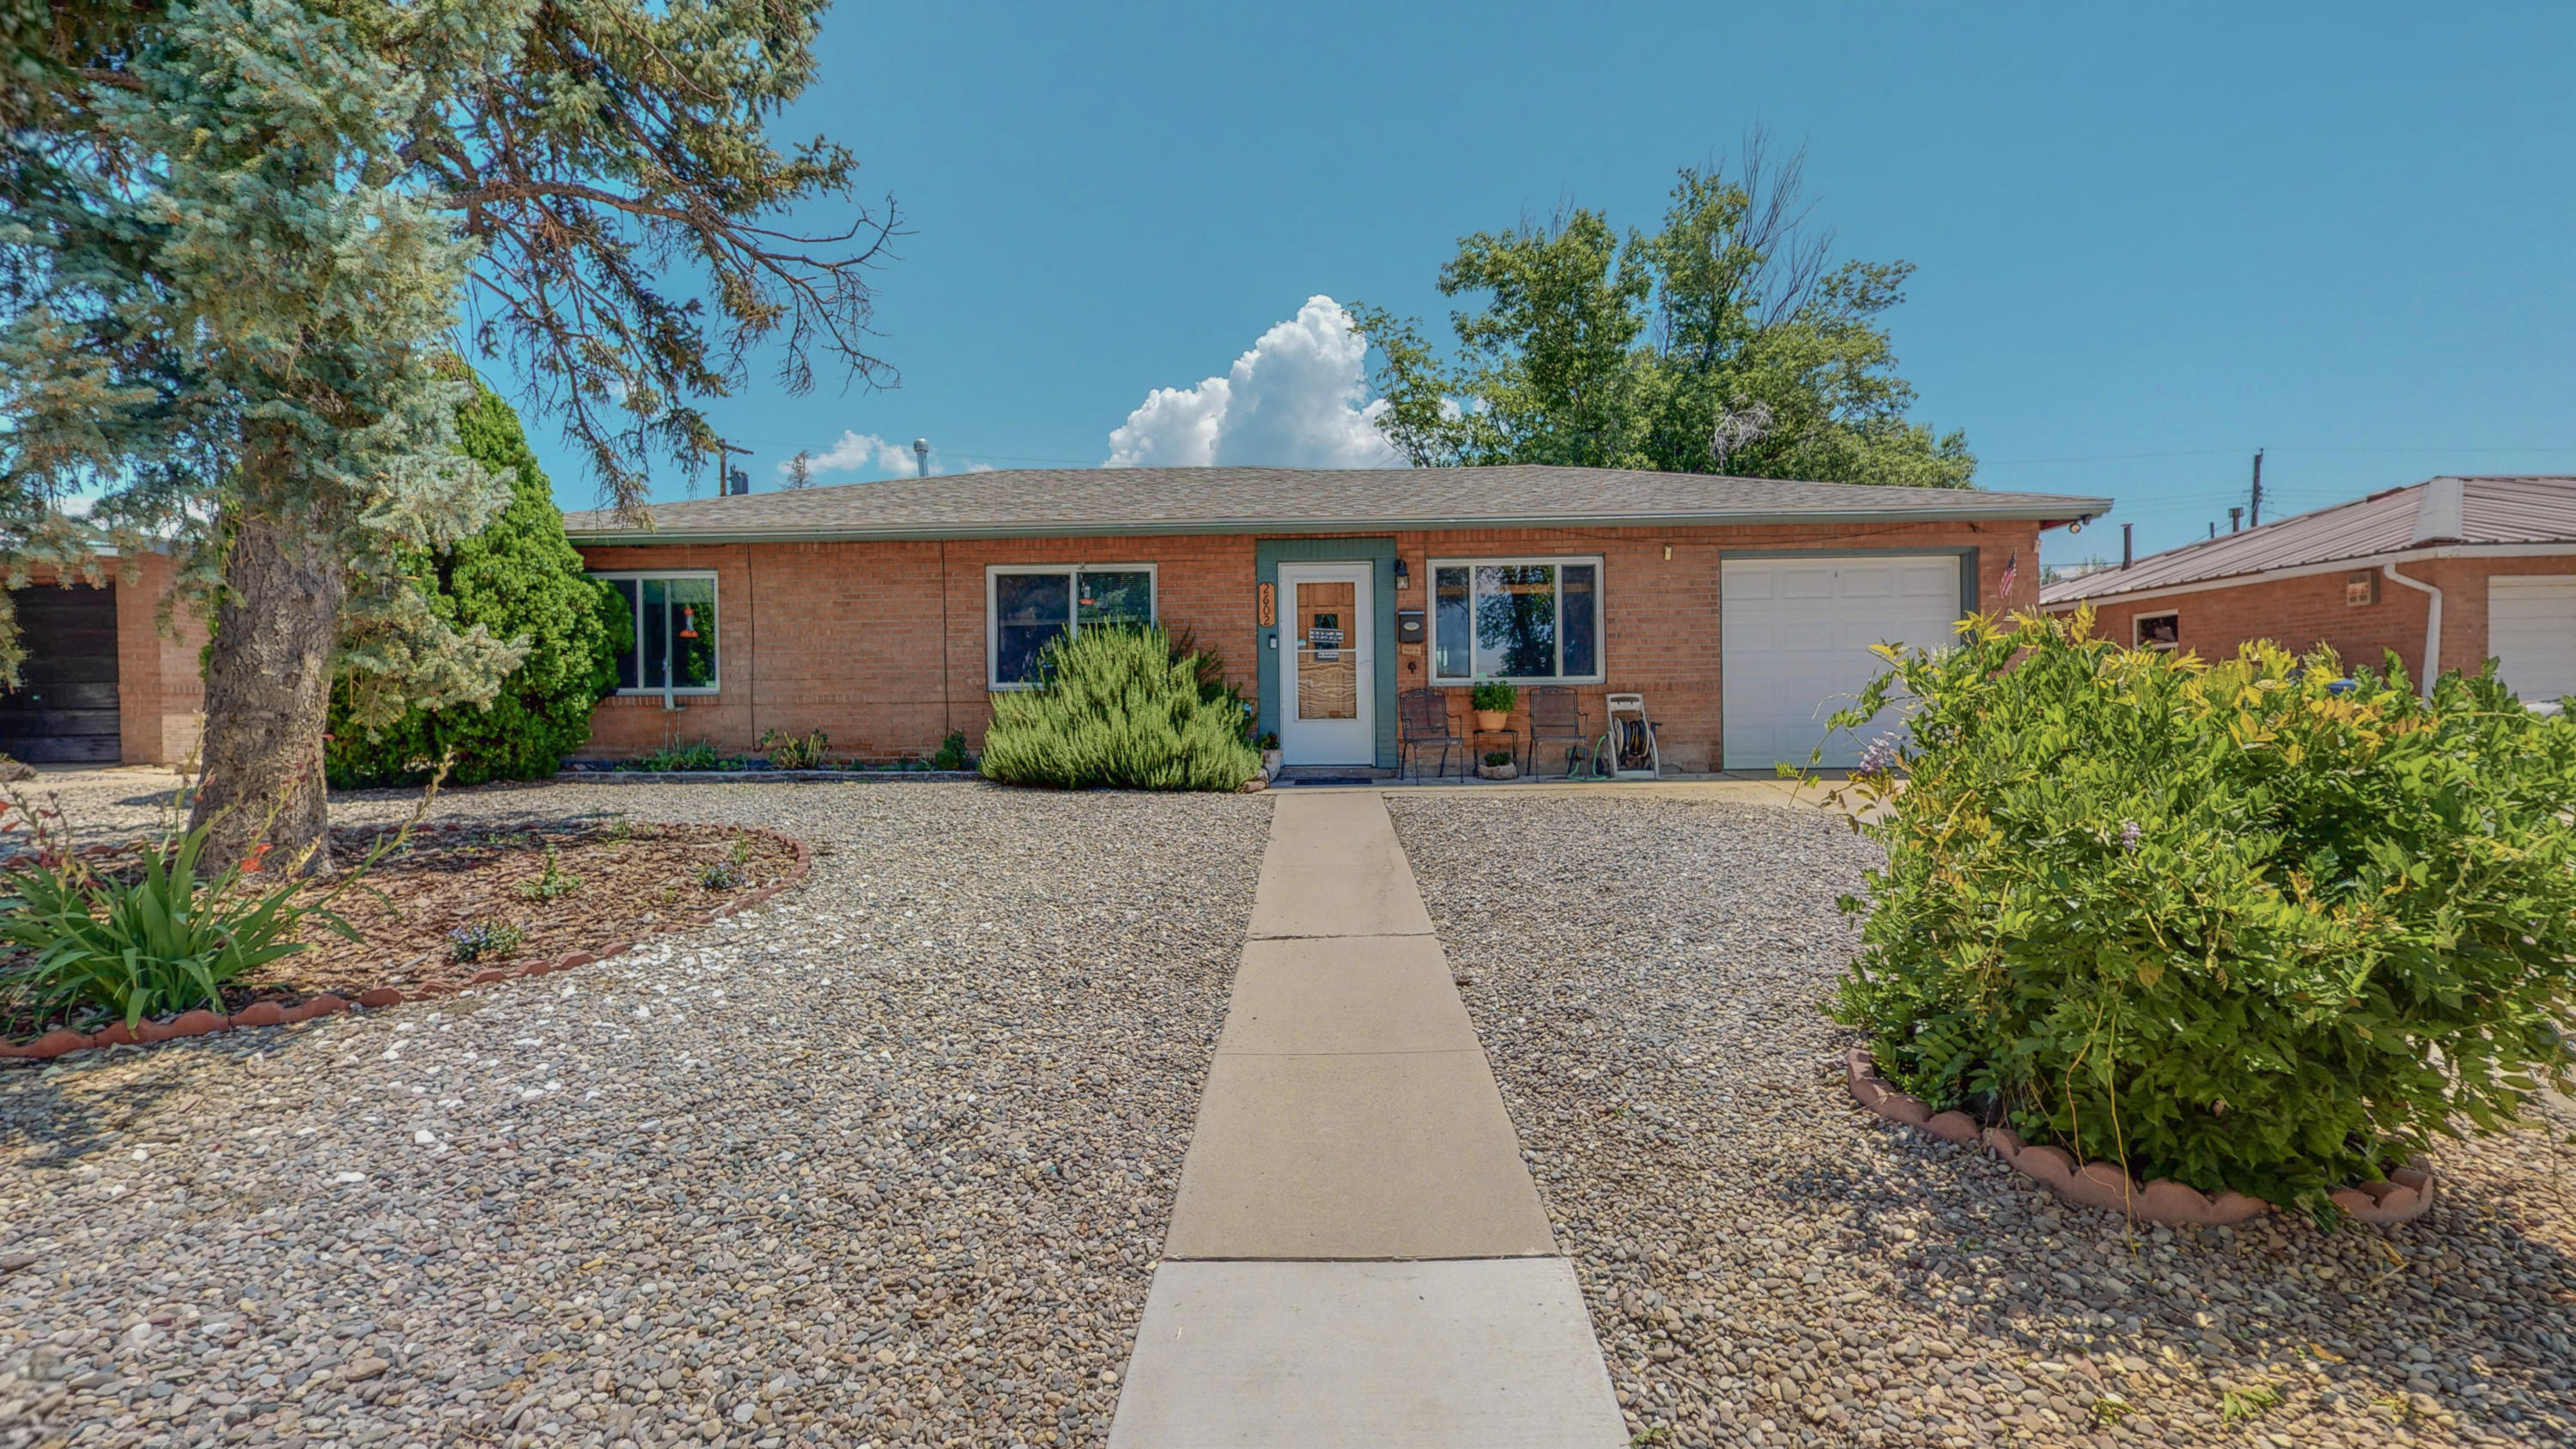 Don't miss this charming home in the heart of Albuquerque.  Three good size bedrooms, 1 3/4 baths.  New roof in 2017 and all new windows installed in 2020. Fresh paint.  Carpet in bedrooms, laminate floors and ceramic tile throughout the rest of the home. Totally landscaped front and backyards.  Amazing backyard with beautiful full garden!  Newly built shed with custom made work bench on the back exterior. Close to schools for all ages, shopping and restaurants. Parks in the area.  Move in ready! Don't miss this one!